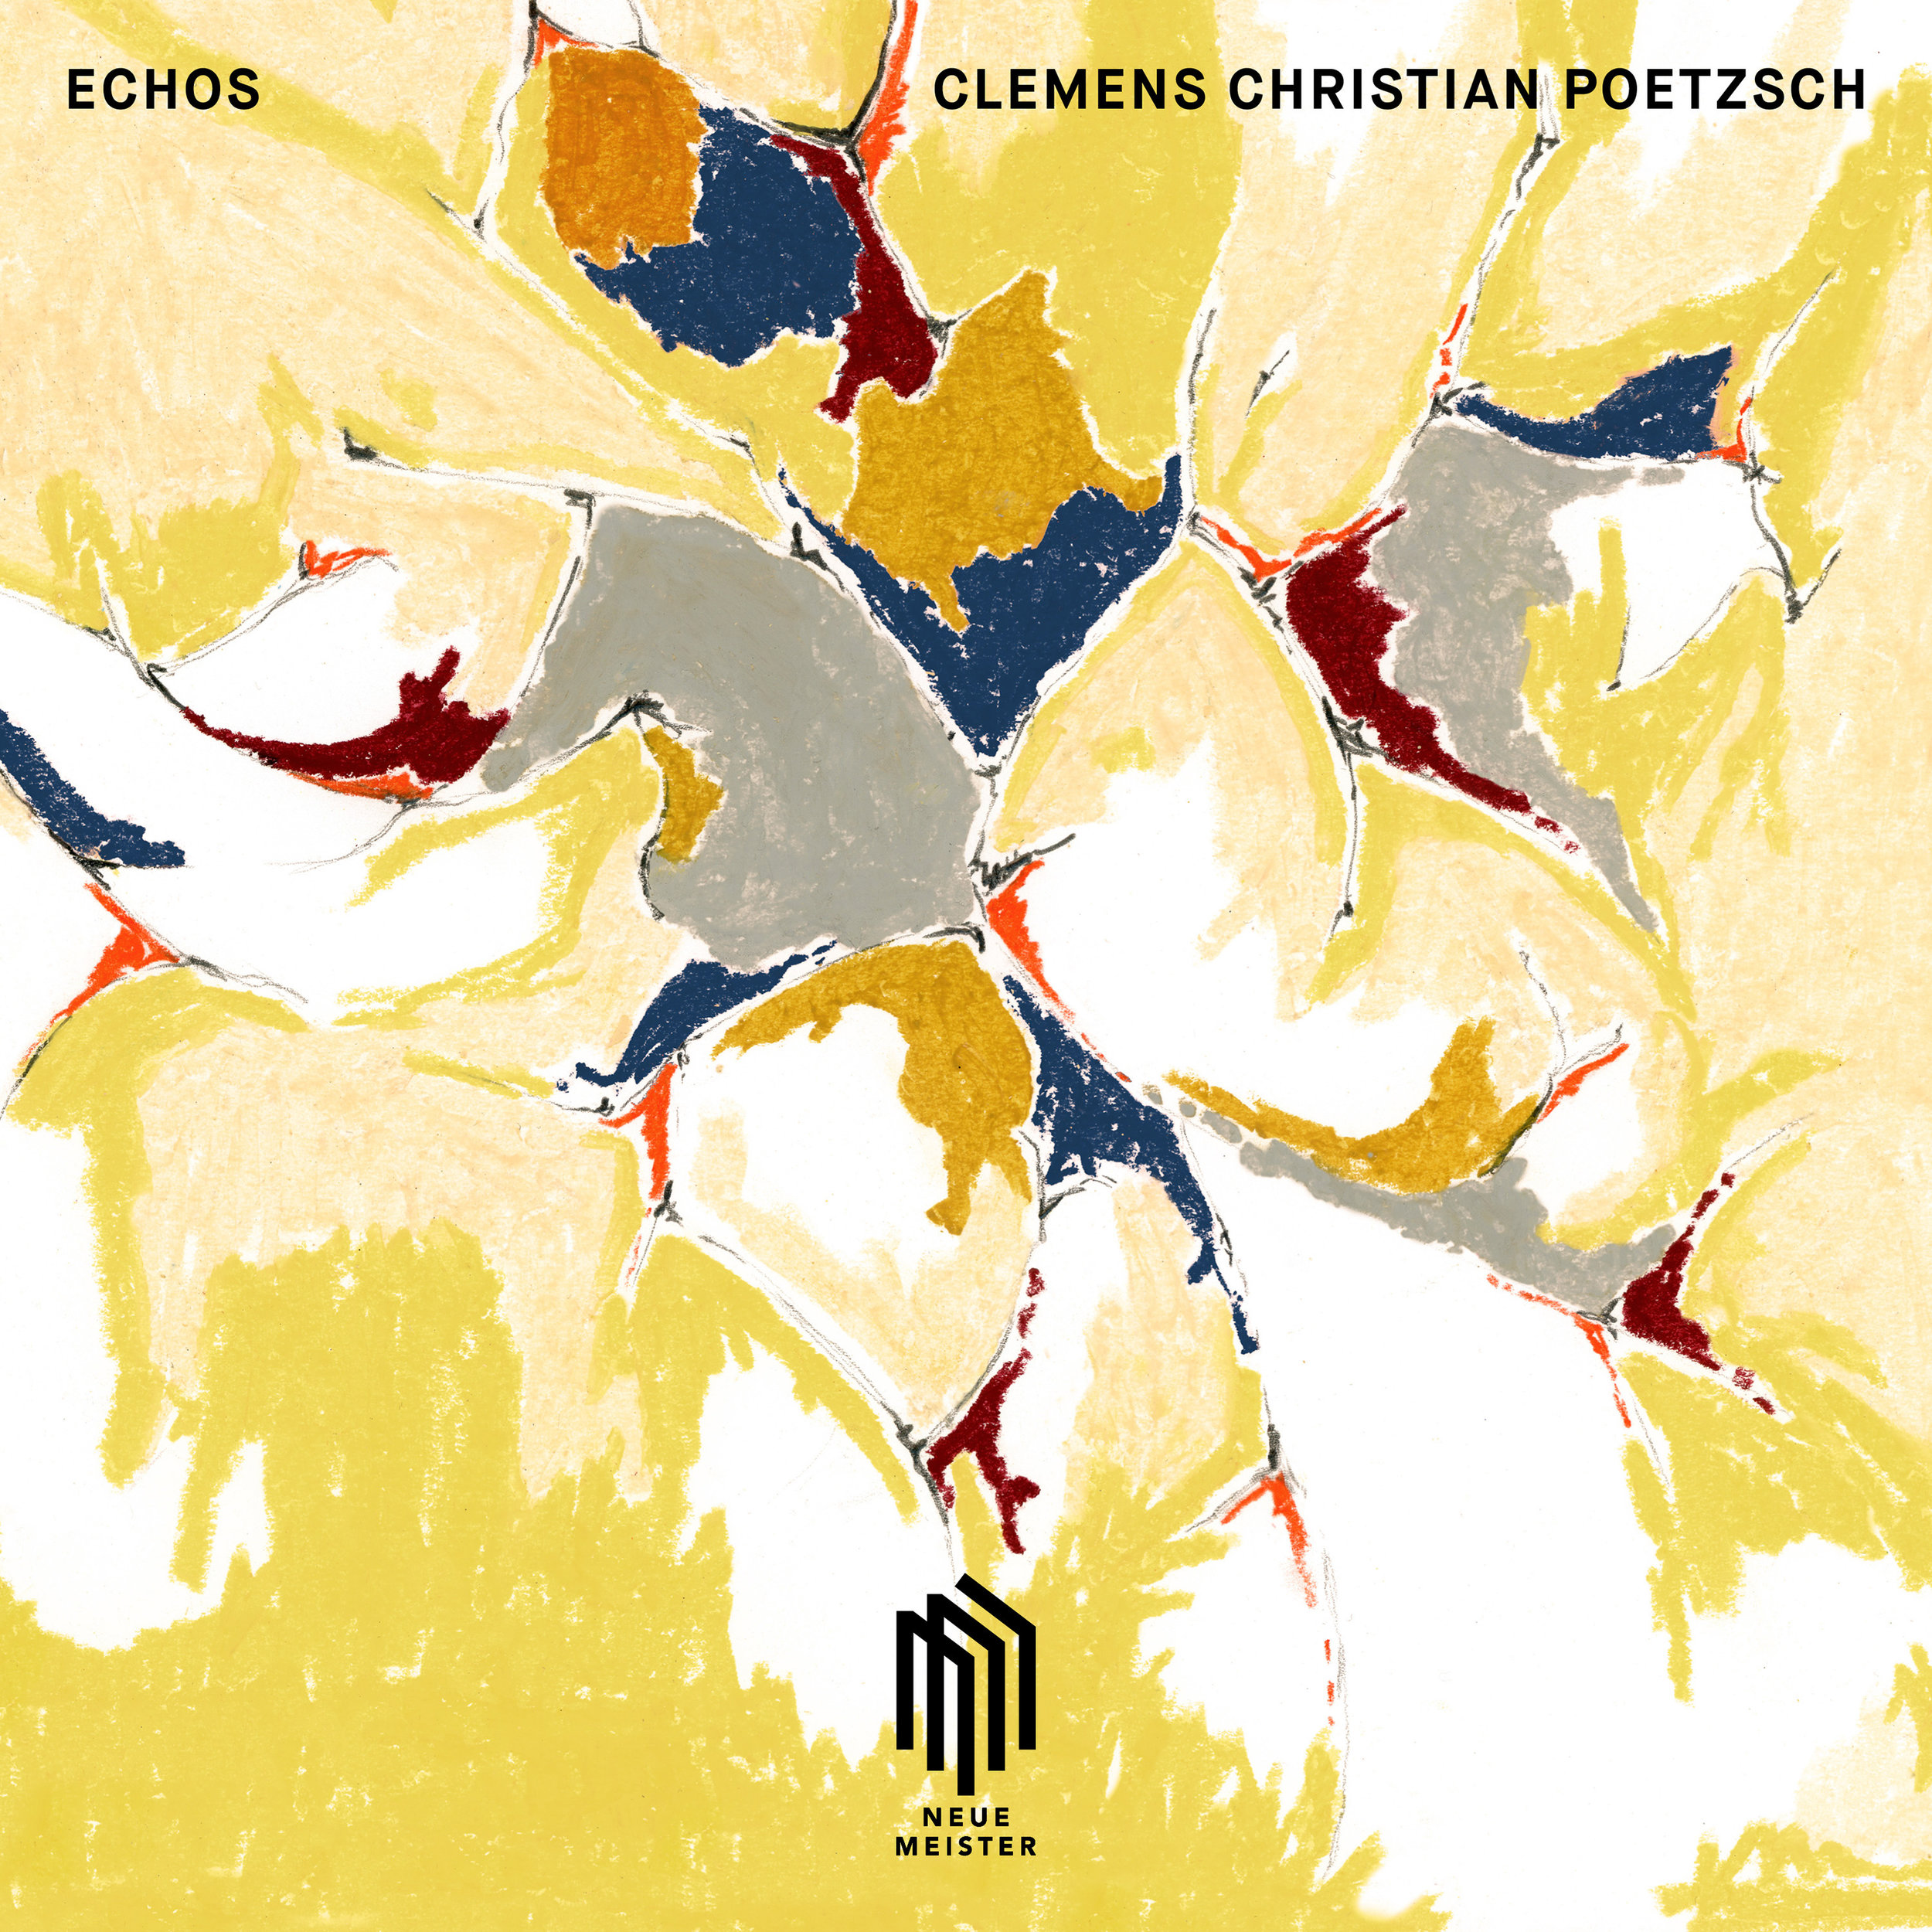 """Echos - Single from """"Remember Tomorrow""""out on Neue Meister / Edel-> listen/watch2019"""